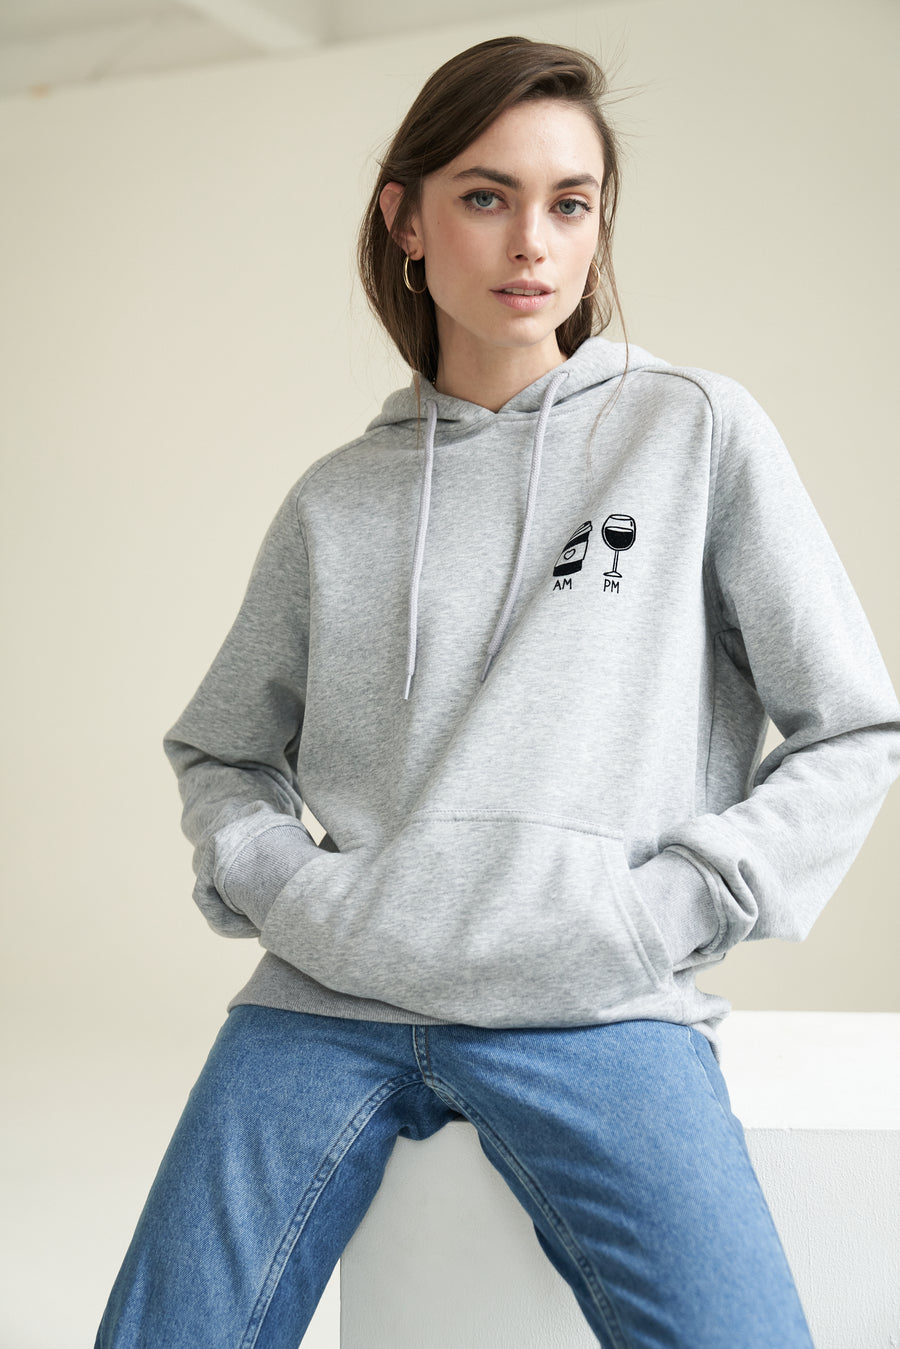 AM Coffee PM Wine Hoodie